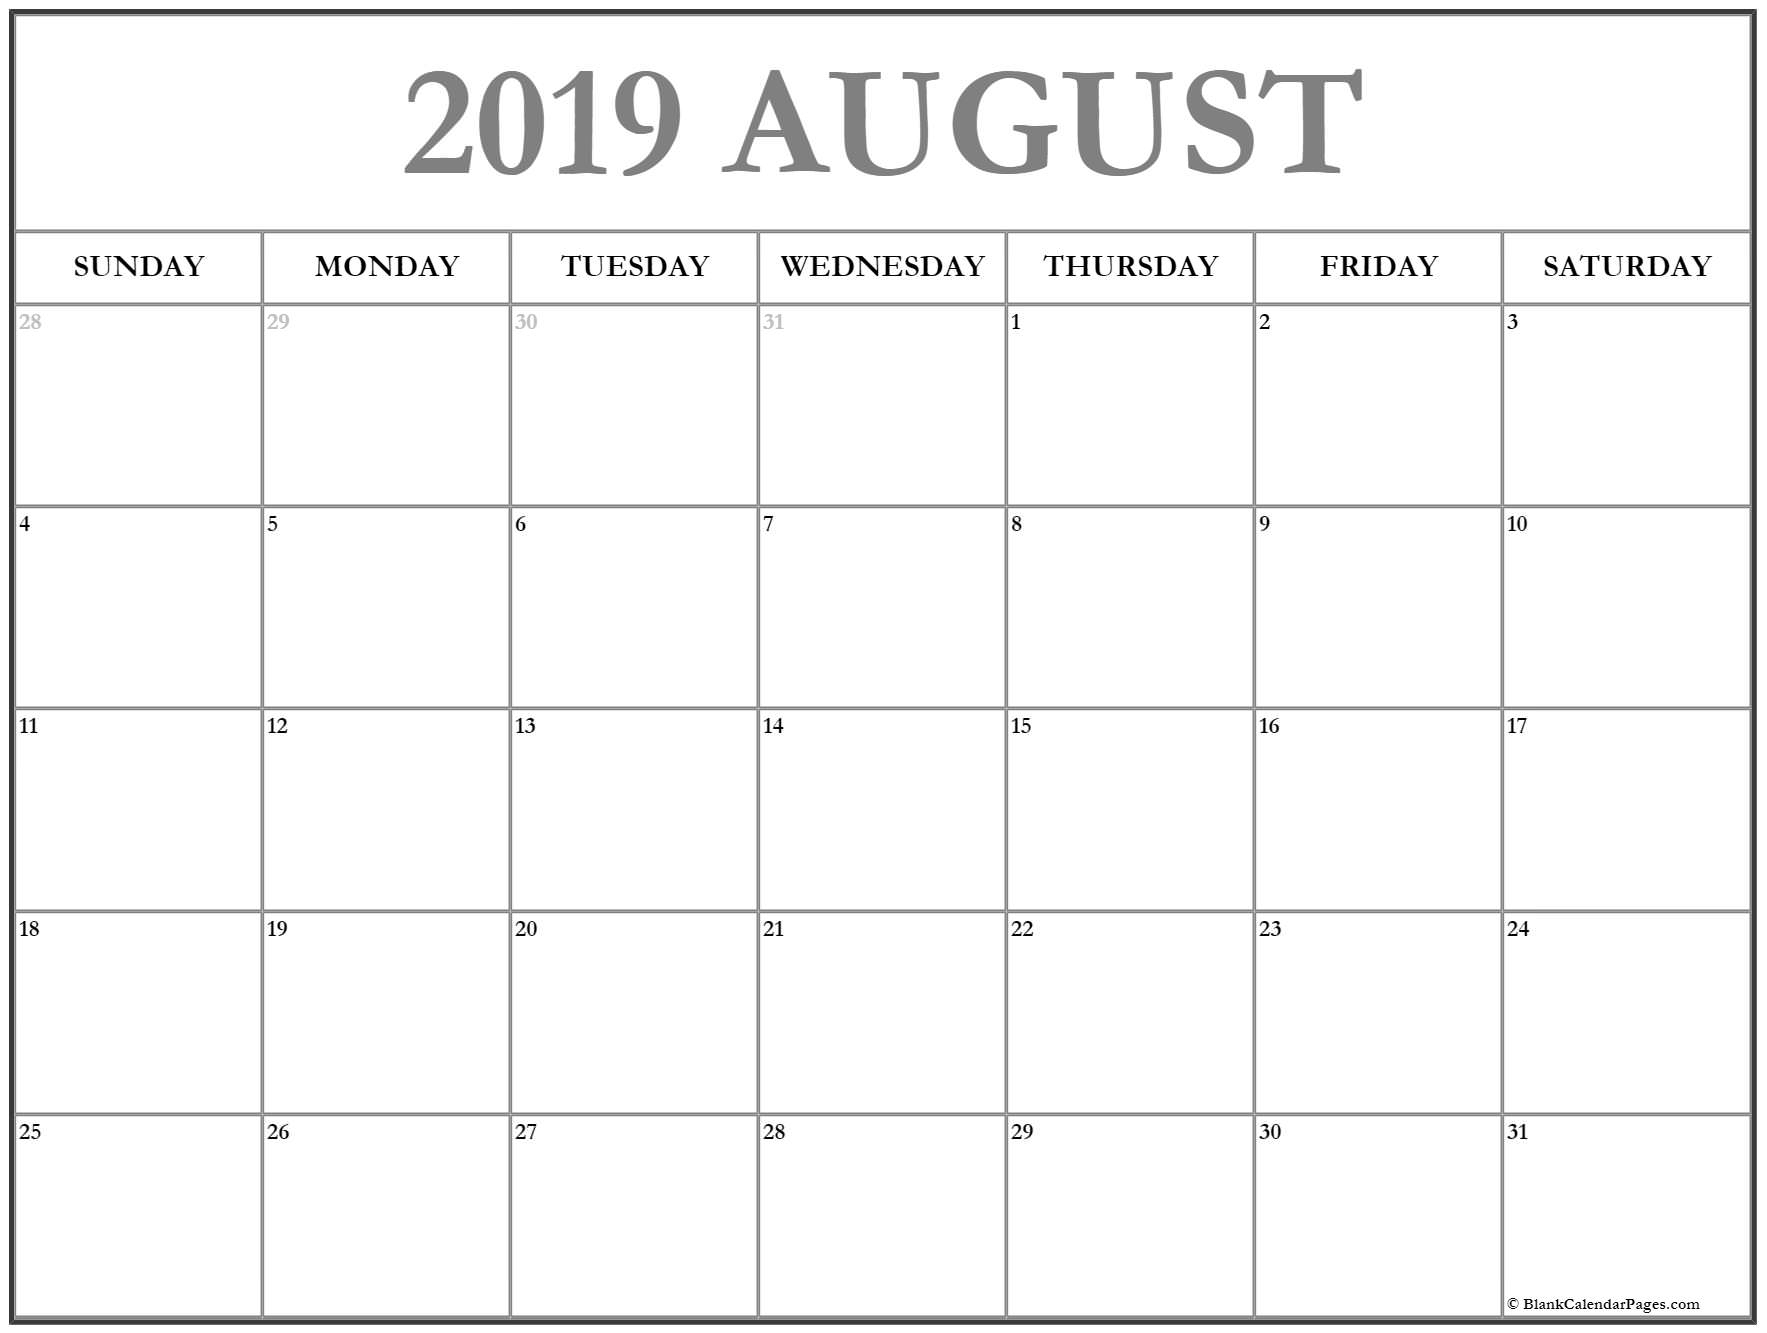 August 2019 Calendar | Free Printable Monthly Calendars intended for August Blank Calendar Pages